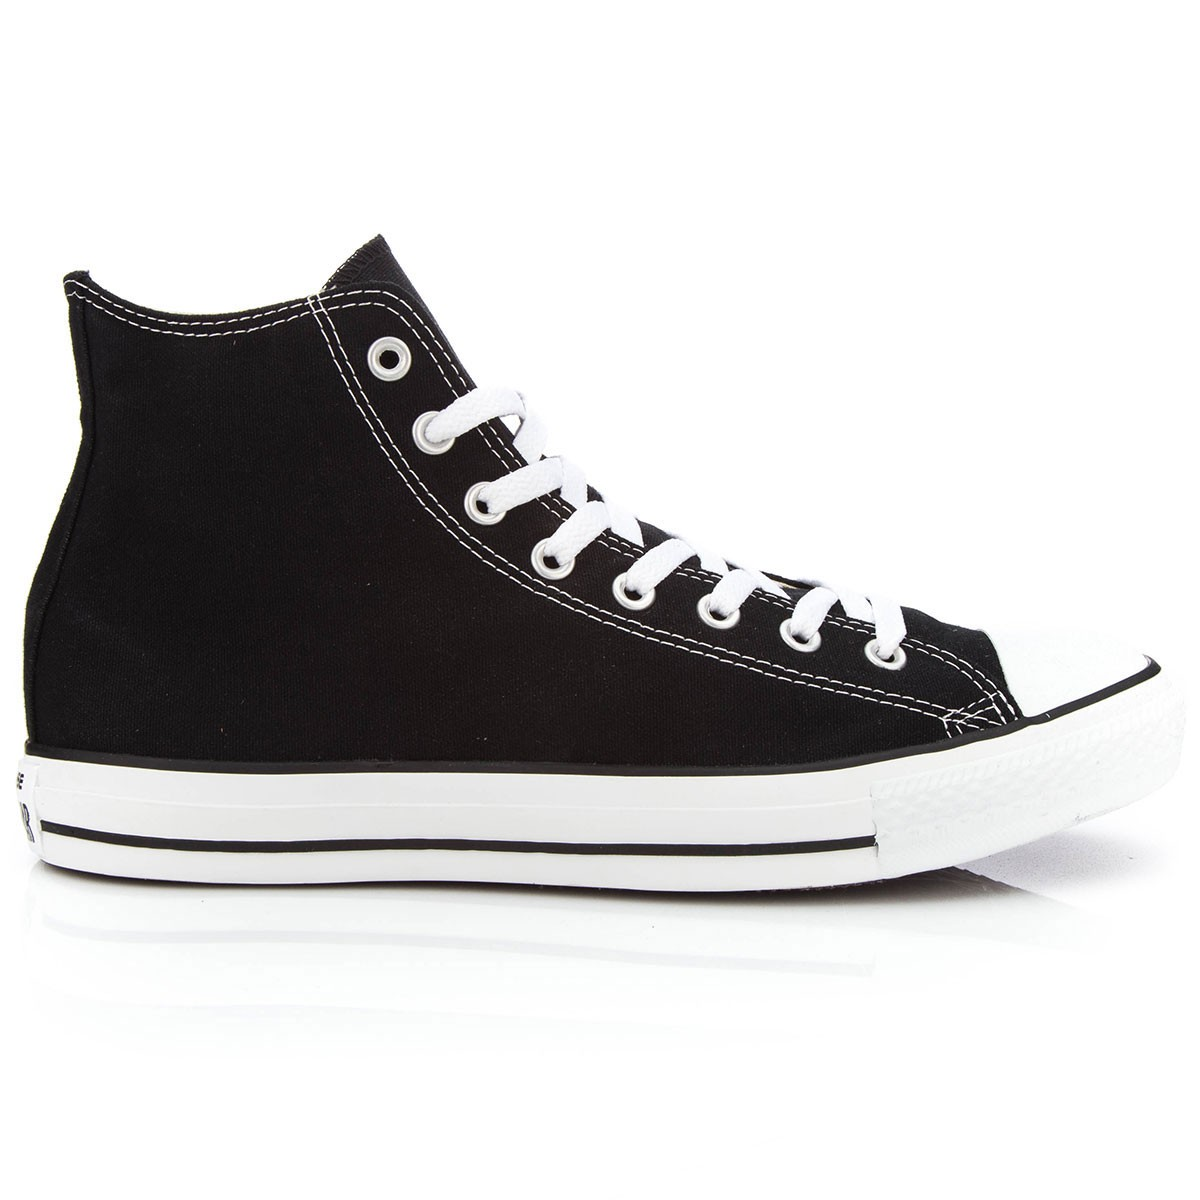 converse c taylor all star